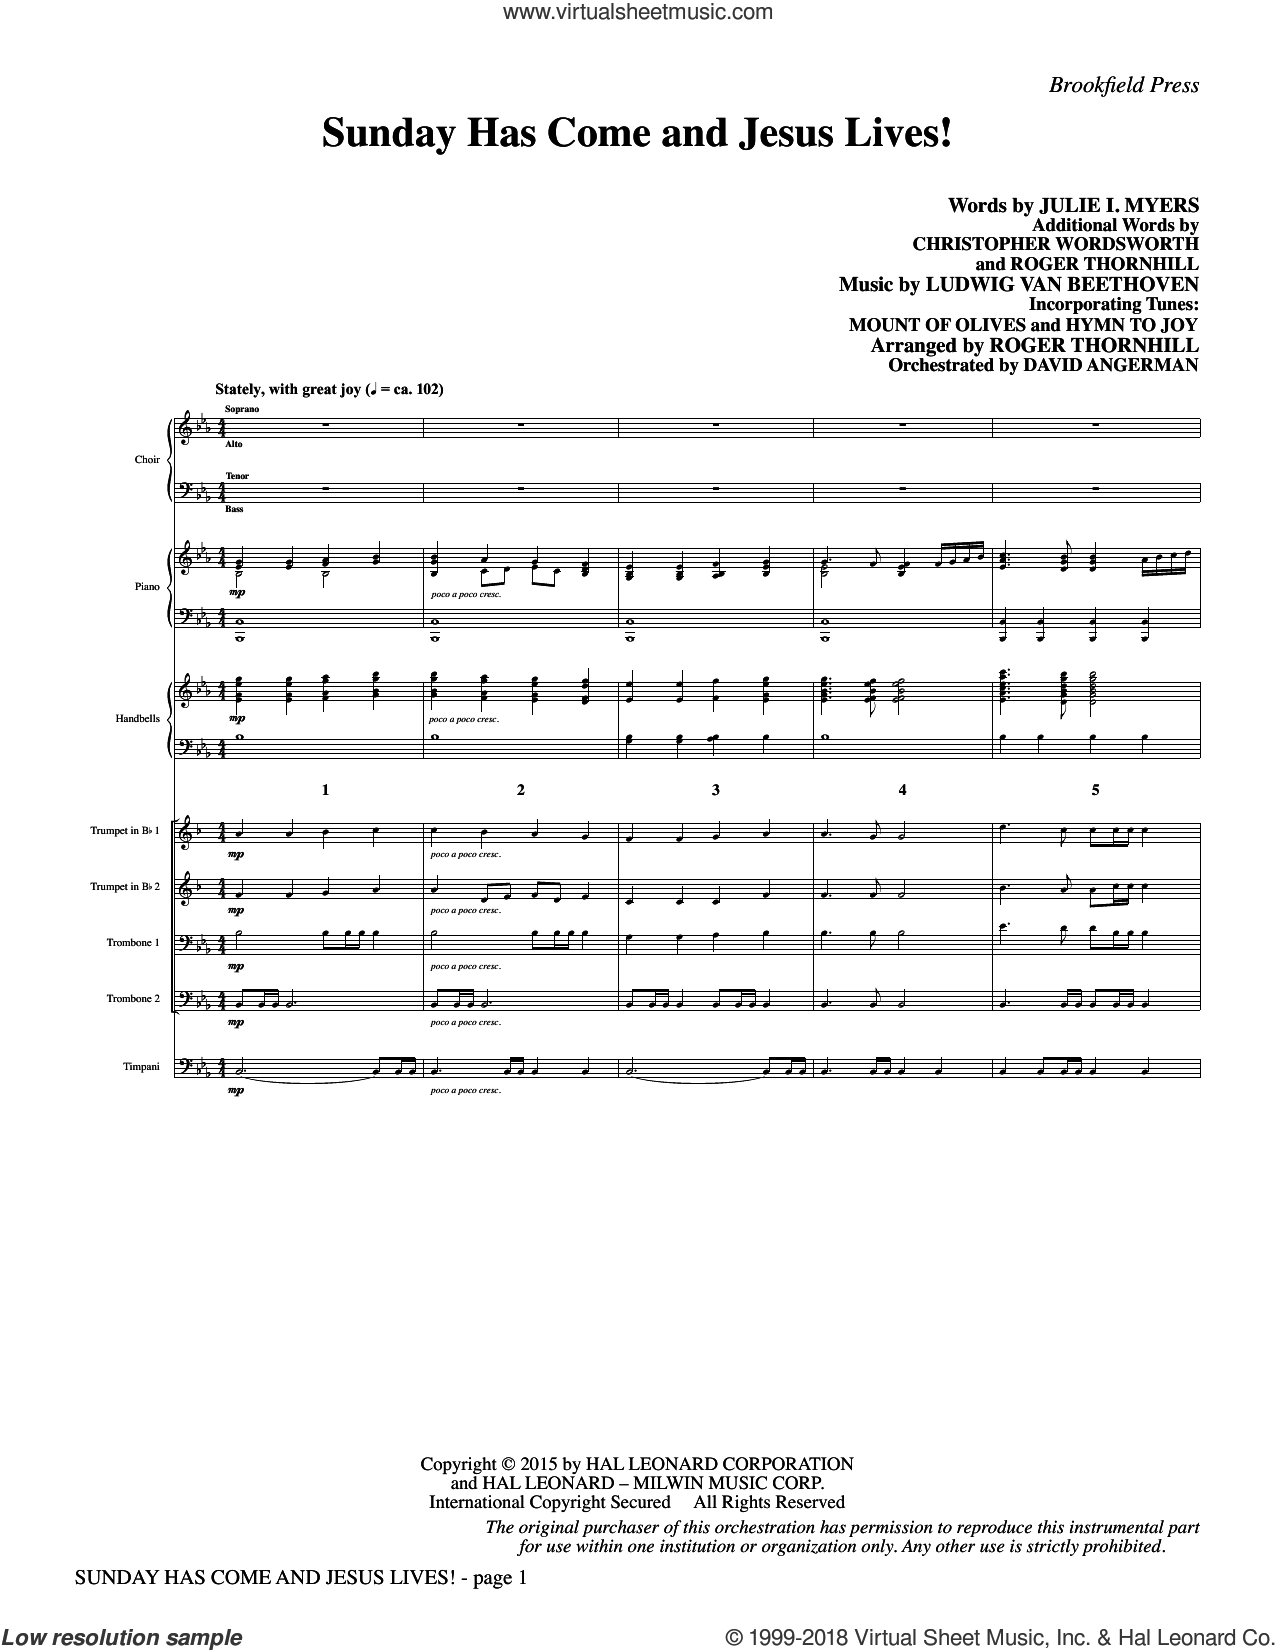 Sunday Has Come and Jesus Lives! (COMPLETE) sheet music for orchestra/band by Ludwig van Beethoven, Christopher Wordsworth, Julie Myers and Roger Thornhill, intermediate skill level